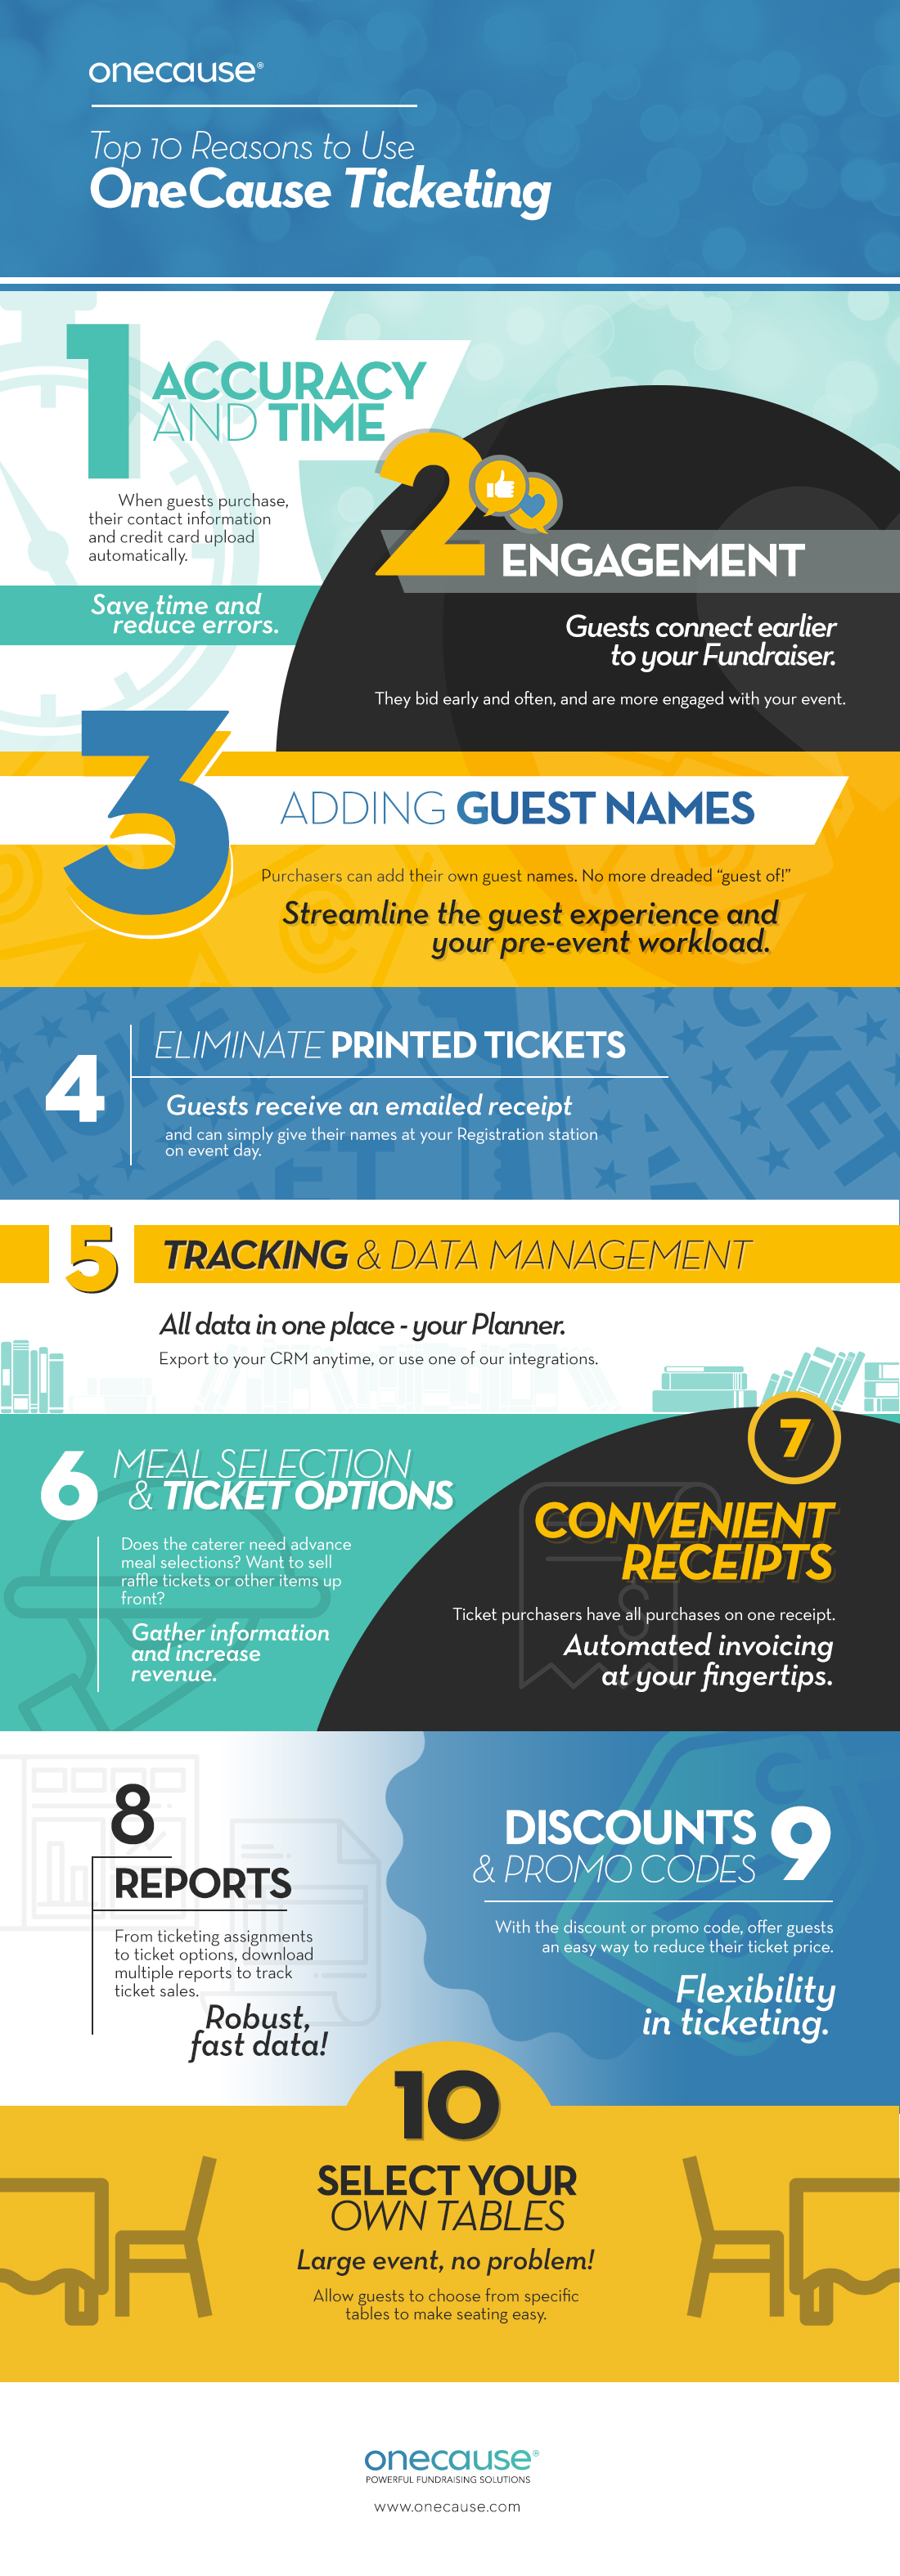 Top 10 Reasons to Use OneCause Ticketing Infographic